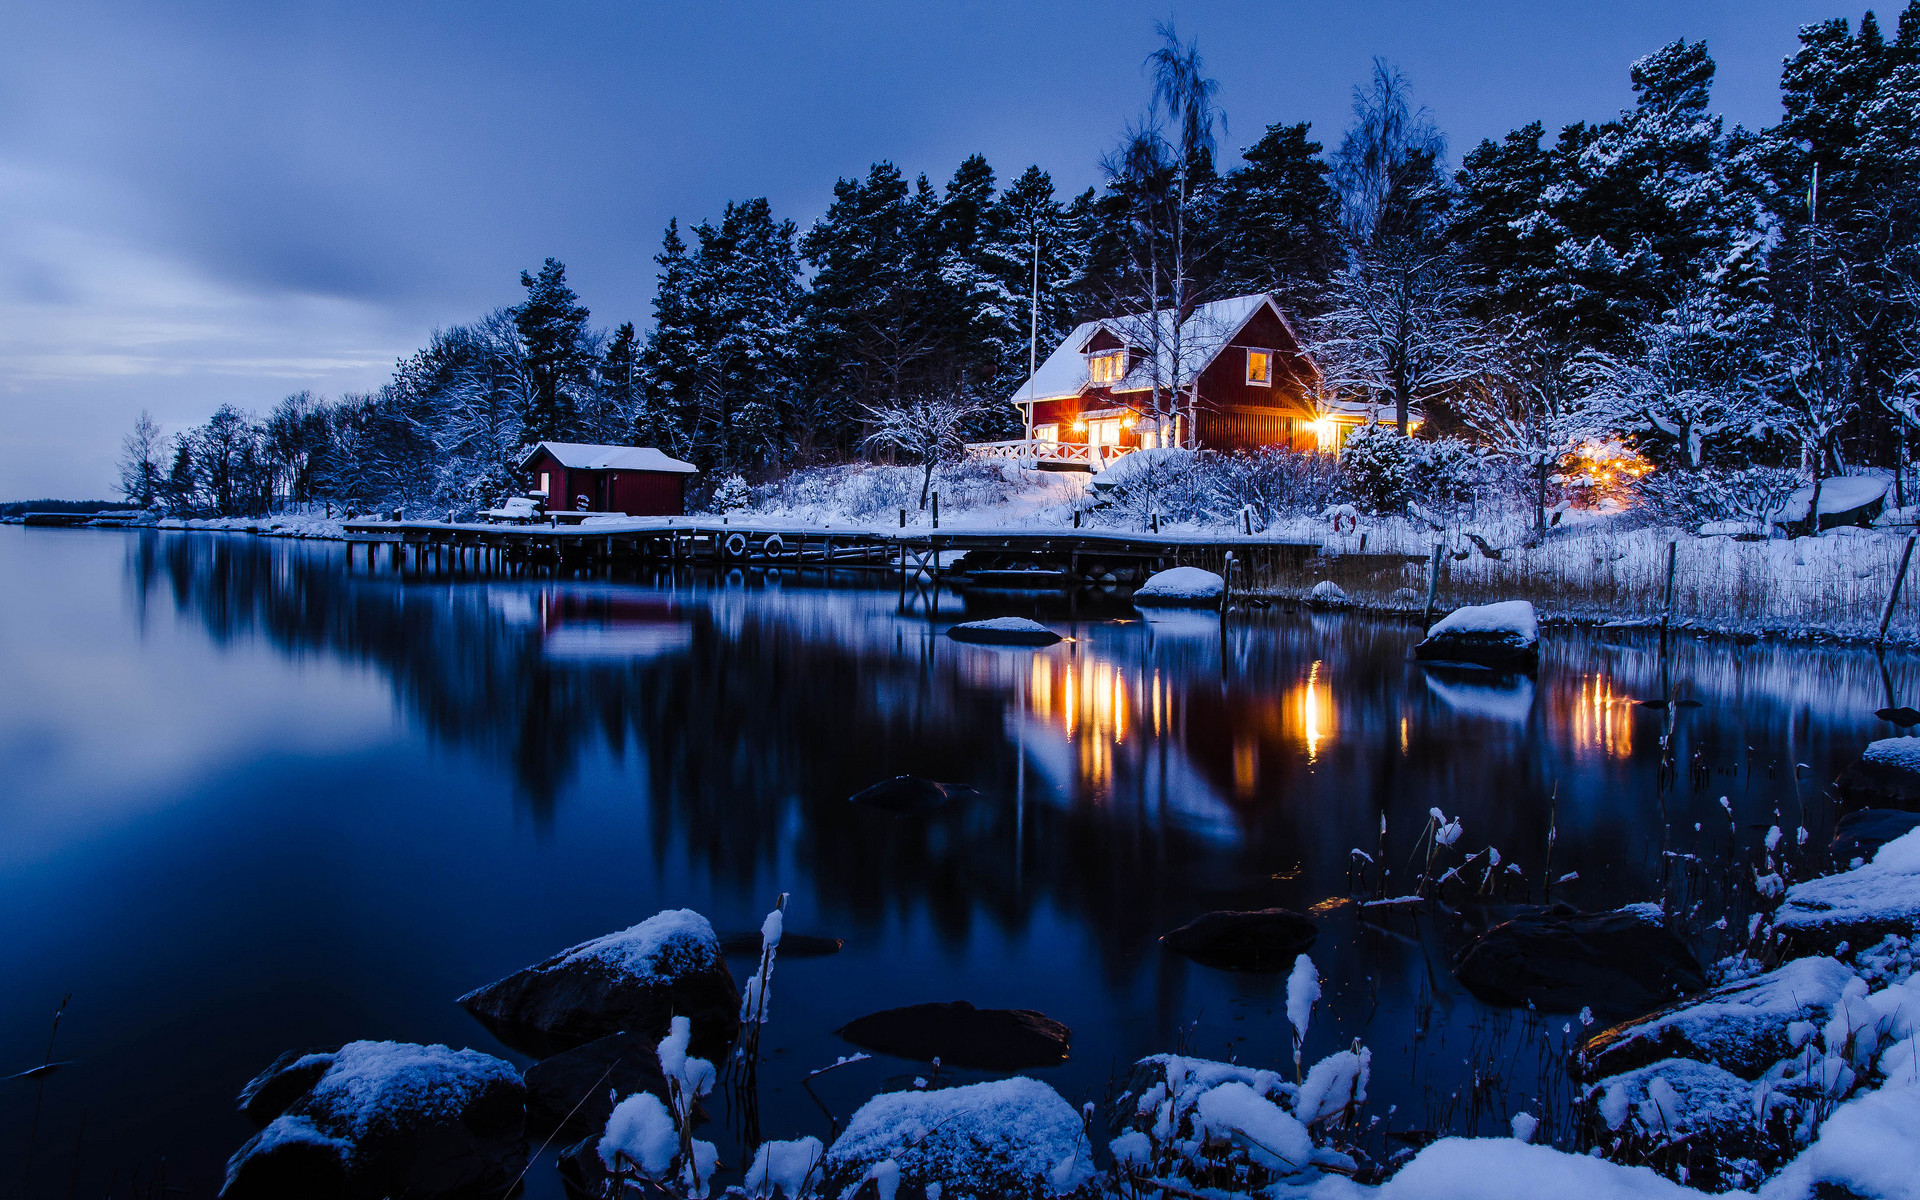 Res: 1920x1200, night scenery wallpaper cute night nature wallpapers wsw3025303